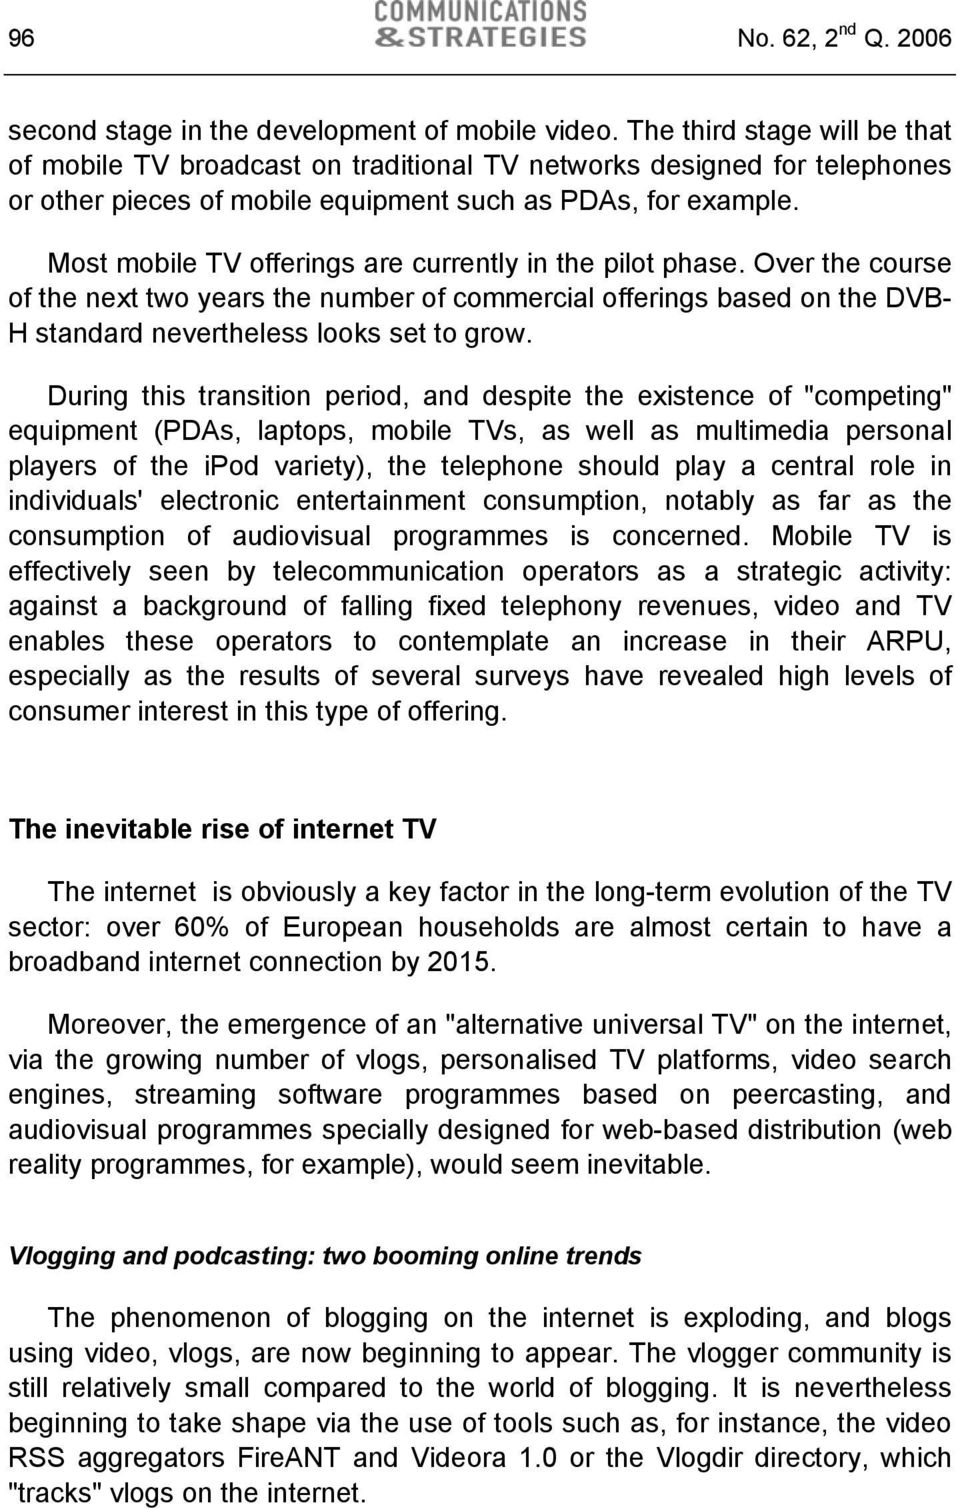 Most mobile TV offerings are currently in the pilot phase. Over the course of the next two years the number of commercial offerings based on the DVB- H standard nevertheless looks set to grow.